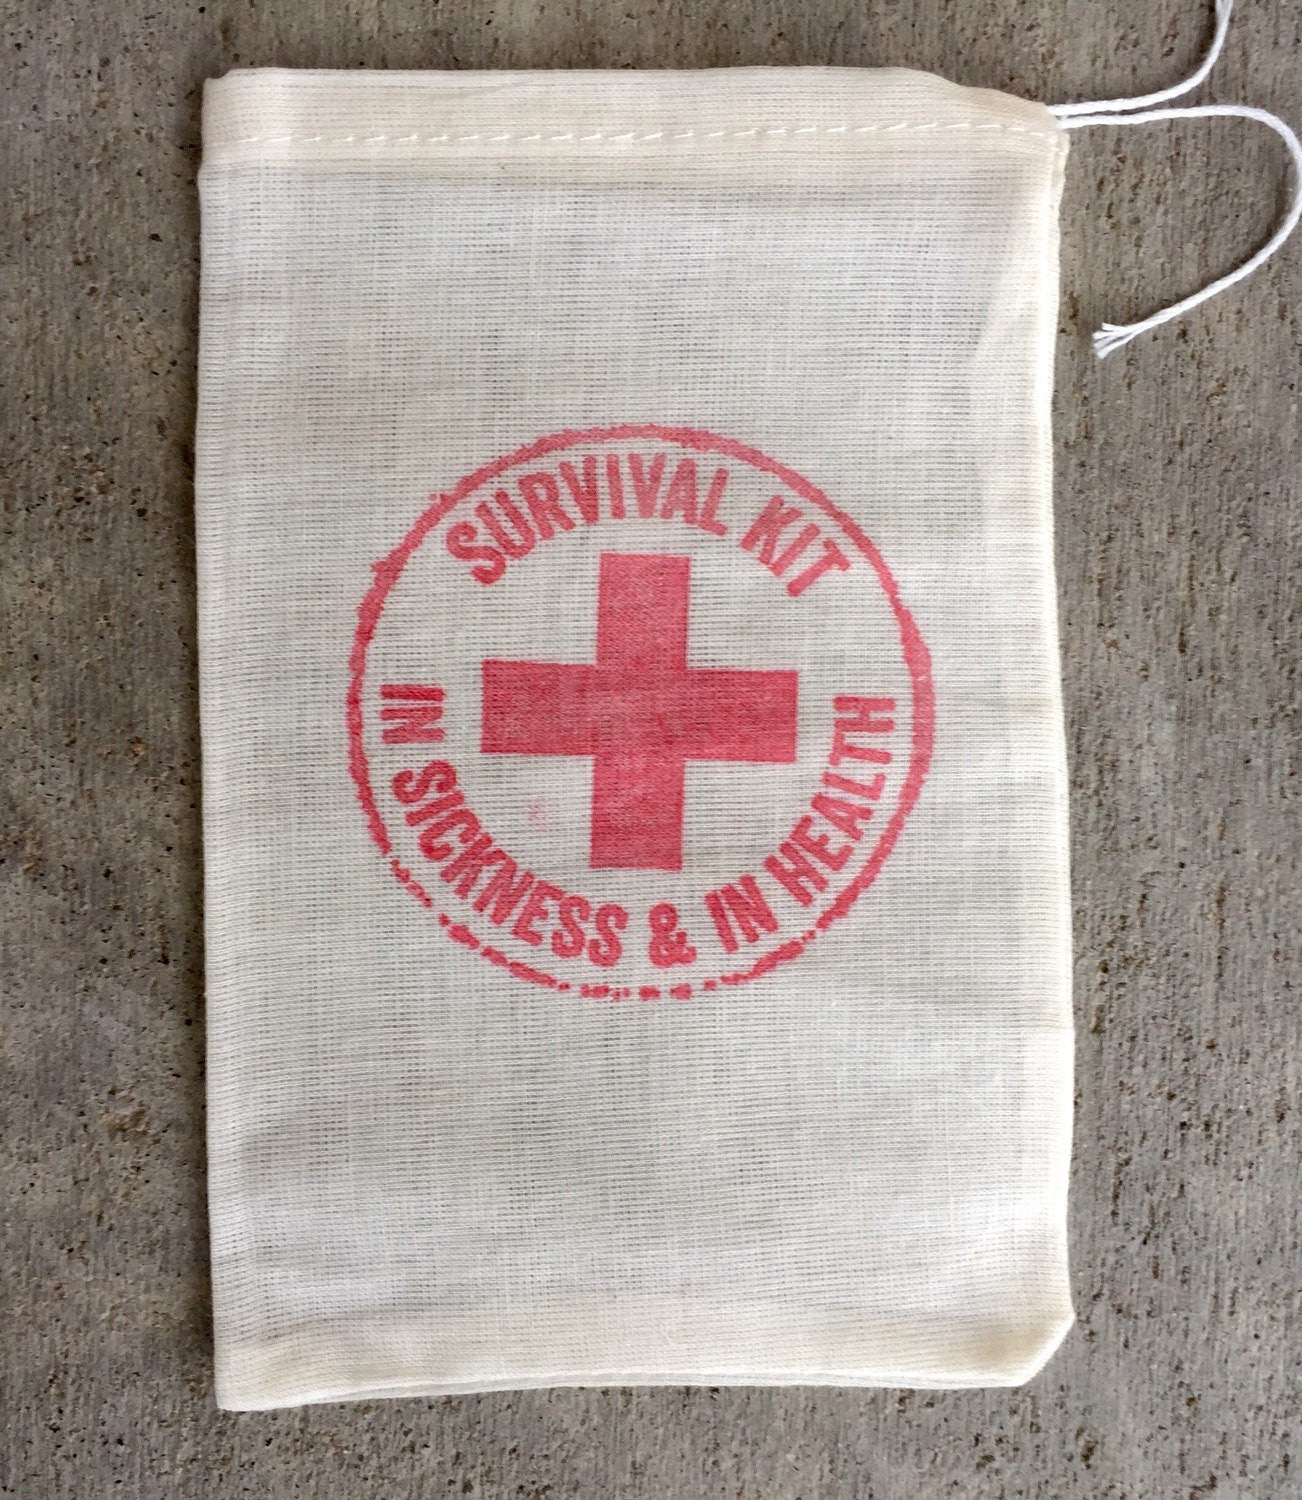 15 survival kits, wedding favor bags, recovery bags, first aid bags, hangover kits, hangover bags, wedding welcome bag favors